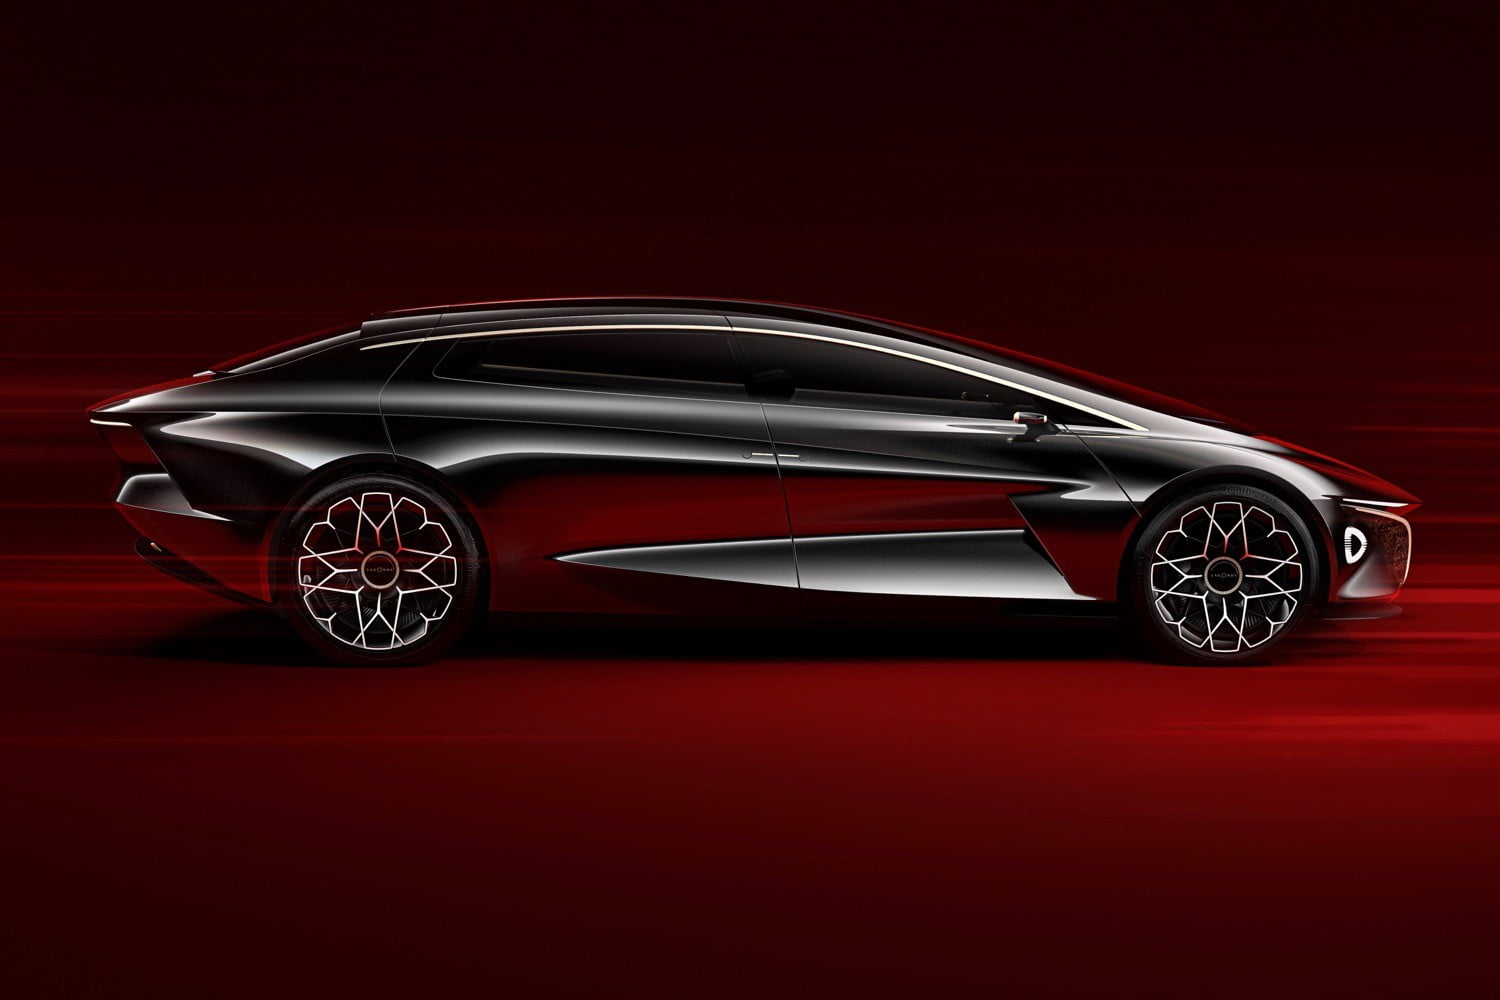 aston martin lagonda vision with Aston Martin St Athan Electric Car Production on Why Did They Never Build These Shooting Brakes furthermore 2019 Aston Martin Db11 Amr also 16 as well Bmw M8 Concept M8 Gran Coupe Debuts Geneva also Aston Martin Dp 100 Vision Gran Turismo Supercar Gt6.